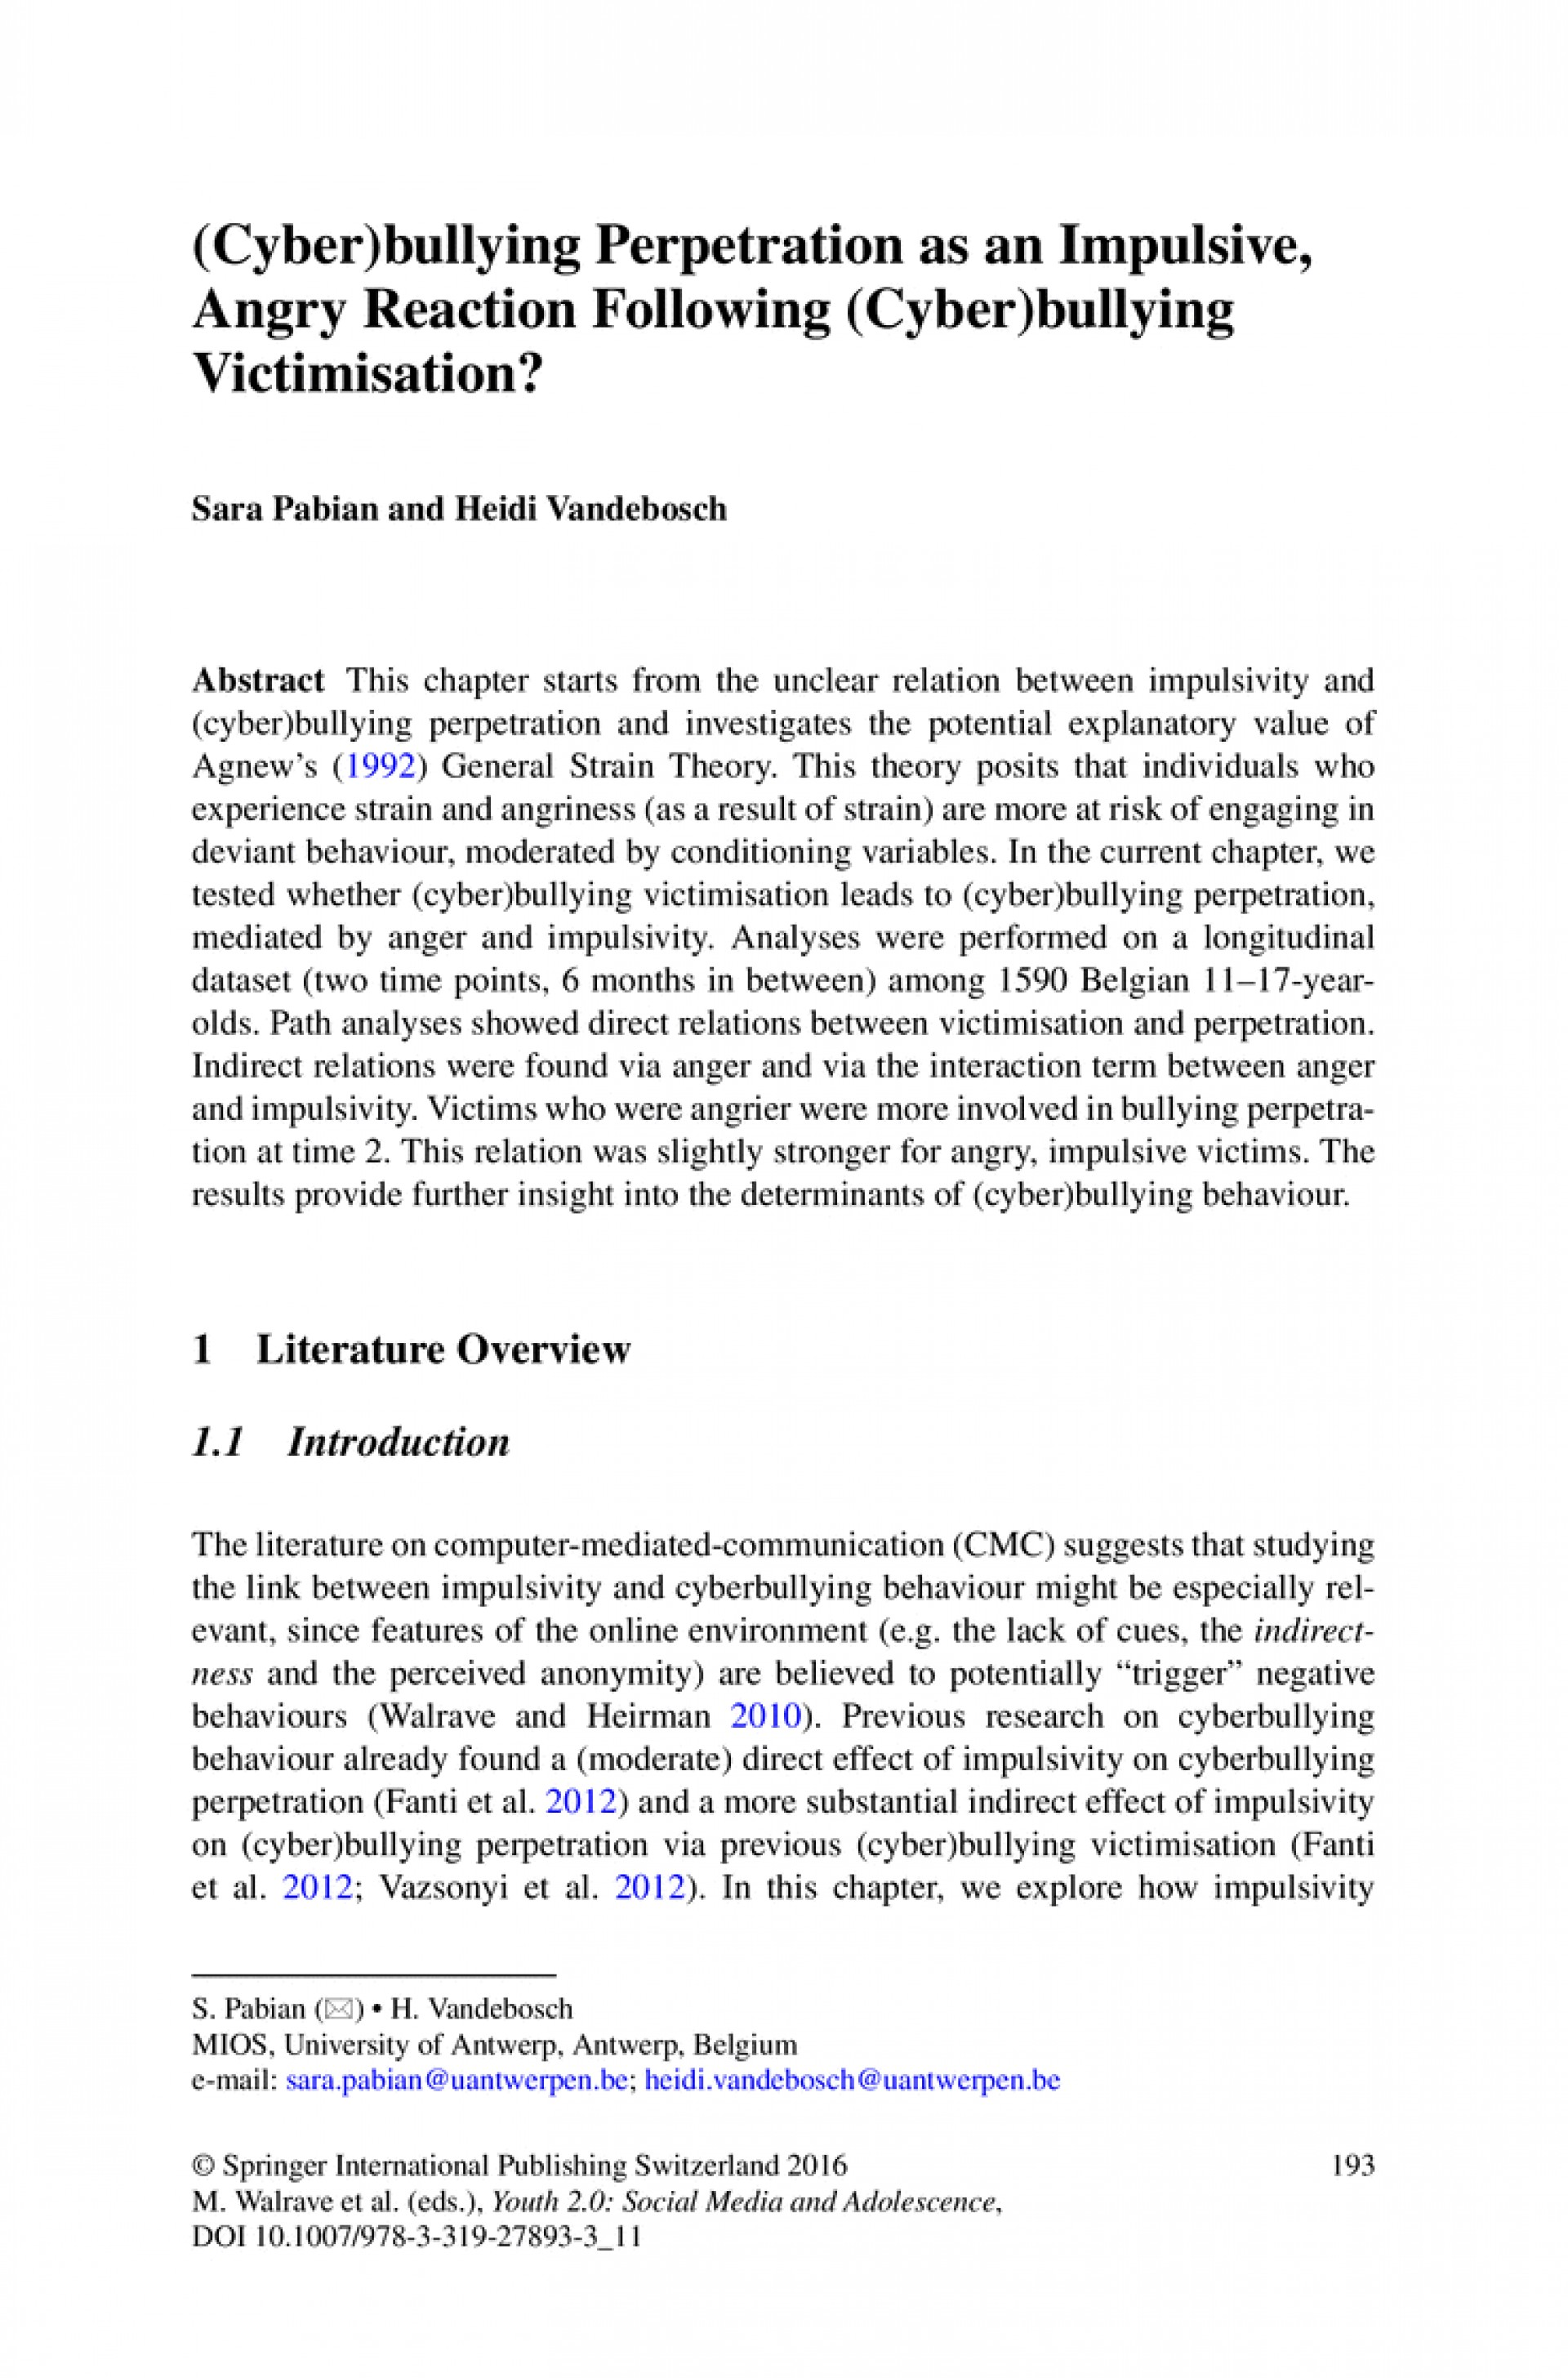 019 Conclusion For Research Paper About Social Media Bullying Essays Cyberbullying Cover Awful 1920